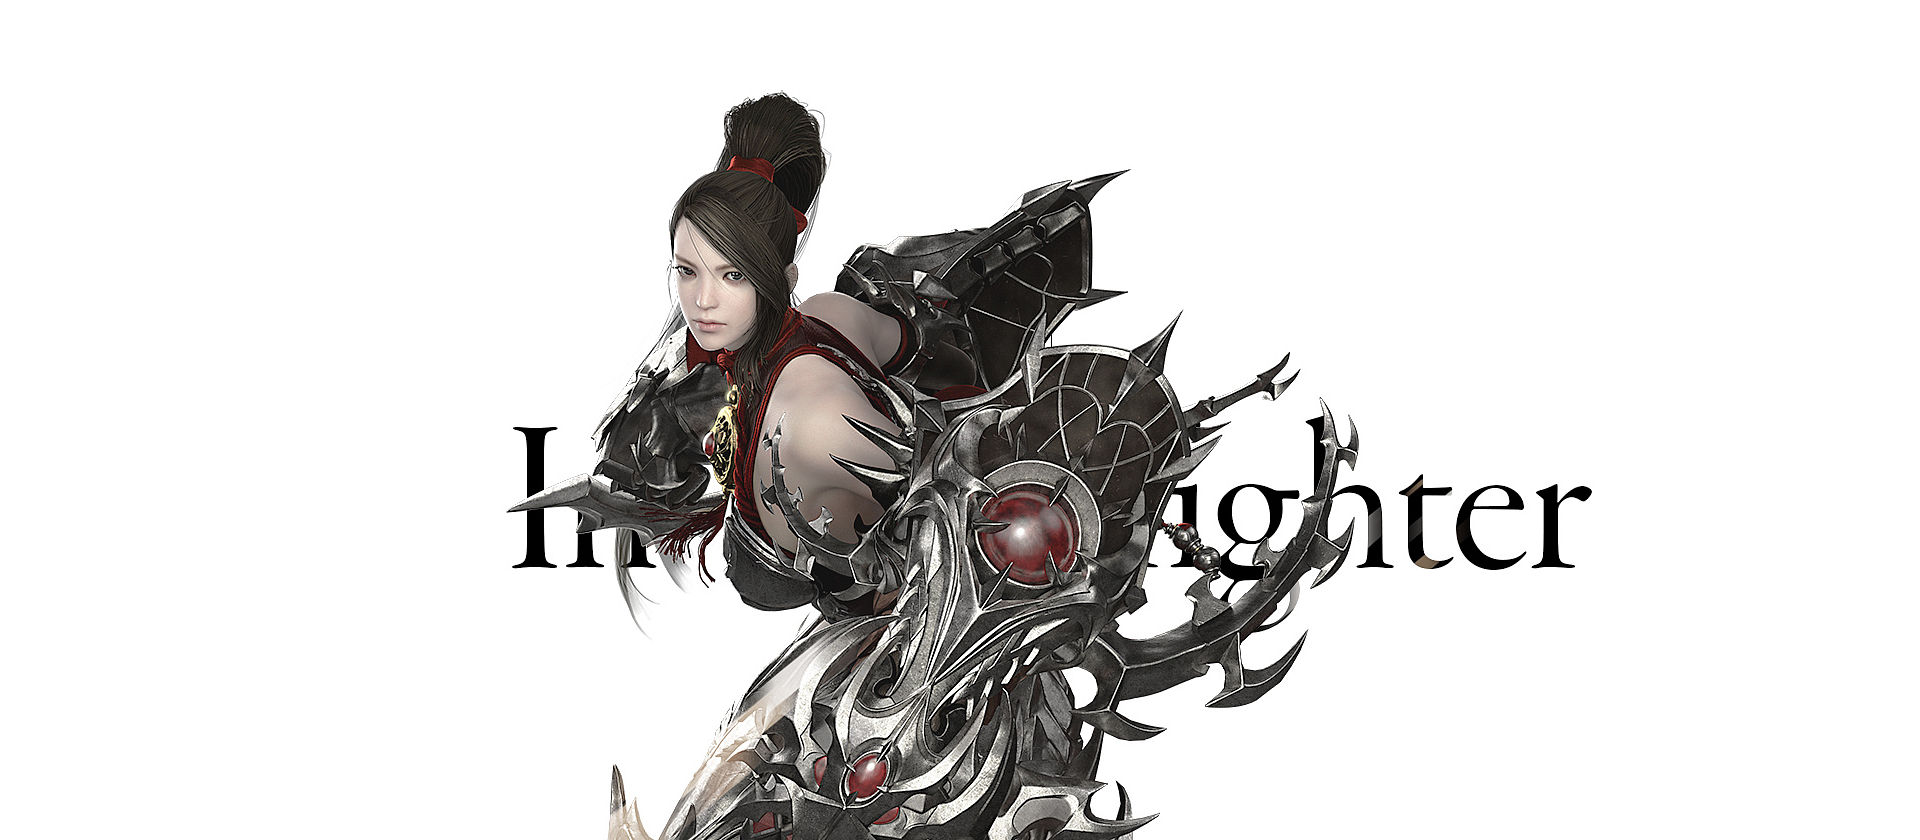 Infighter en Lost Ark Online, una de las tres subclases de Hunter.